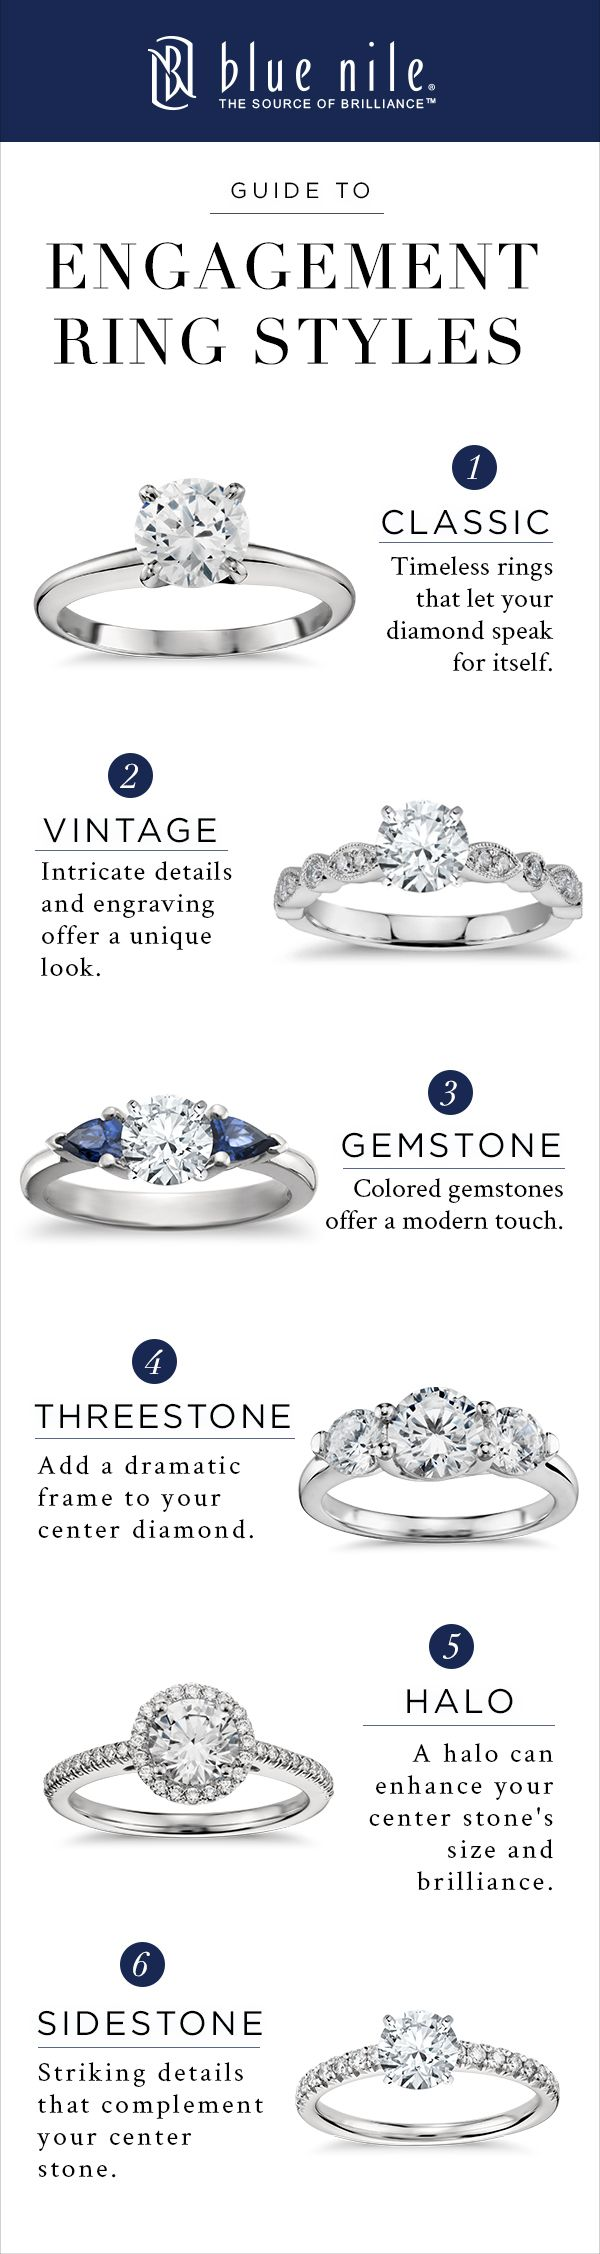 Classic, vintage, halos and more. Handcrafted engagement rings, each perfectly designed to take your breath away.